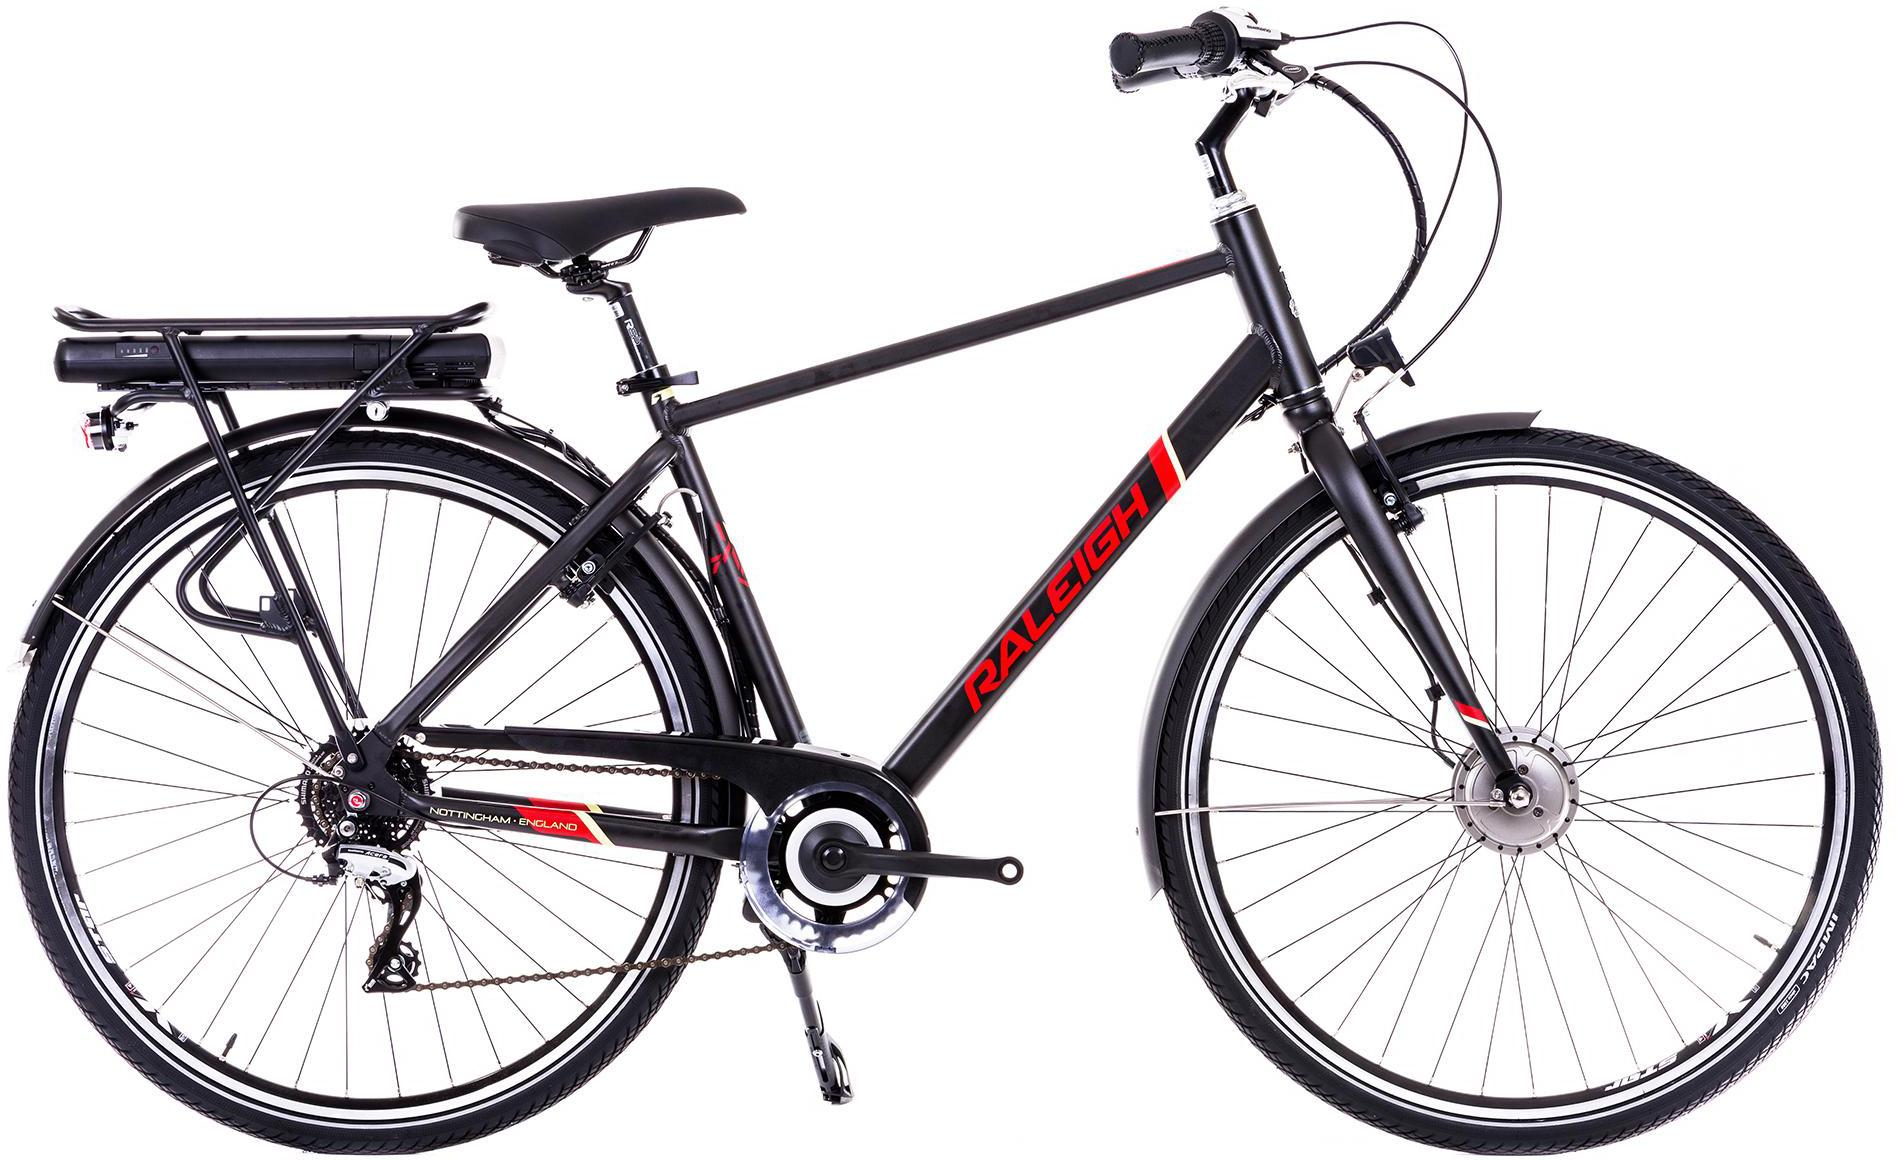 04955043994 Image of Raleigh Array Crossbar Acera Electric Hybrid Bike - Black -19 inch